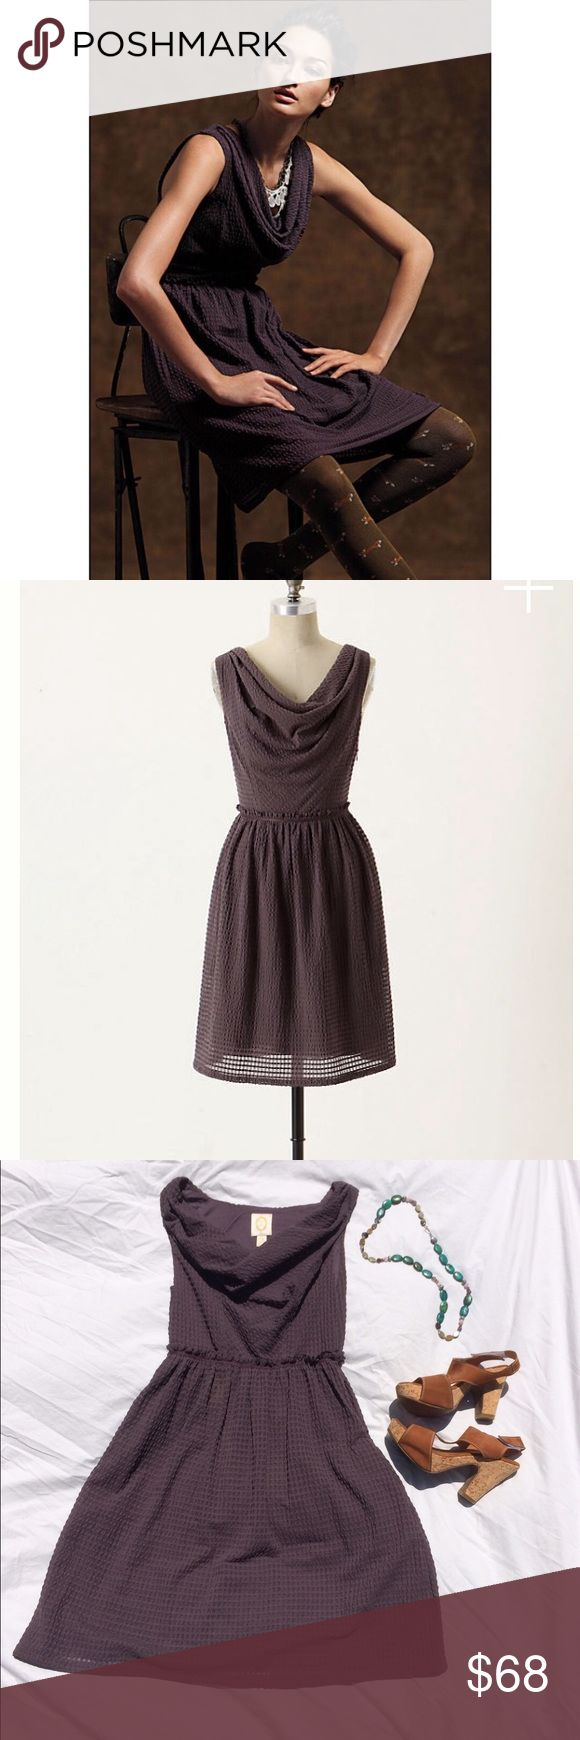 Anthropologie waffle weave cowl neck dress anthropologie ric Rac dress size xs. Has amazing cowl neck and side zip. This flattering fitted bodice is in a plum color. Anthropologie Dresses